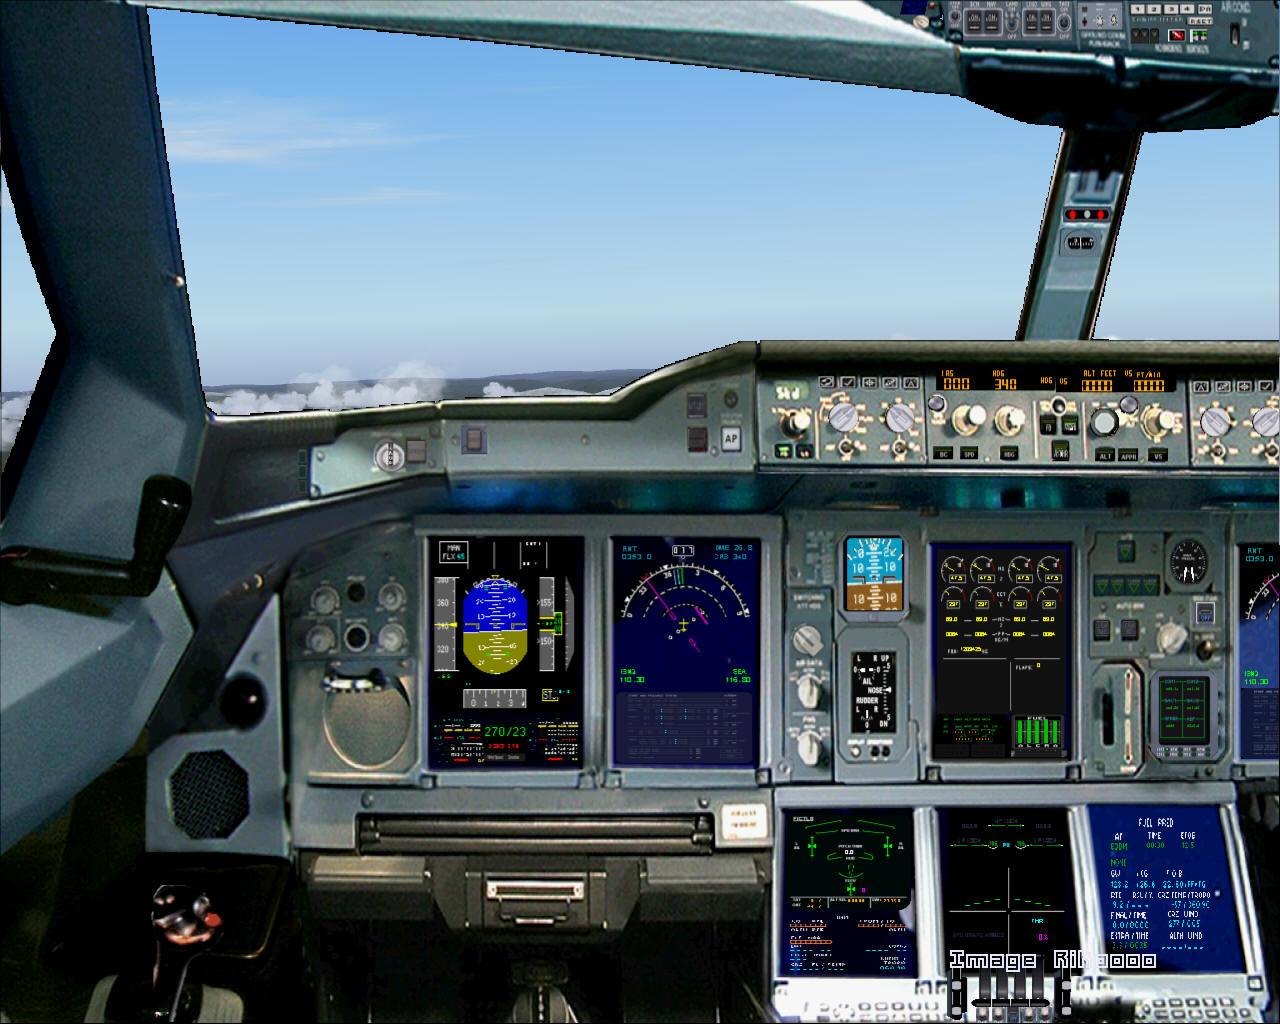 Airbus a380 panel fs2004 download islivin.